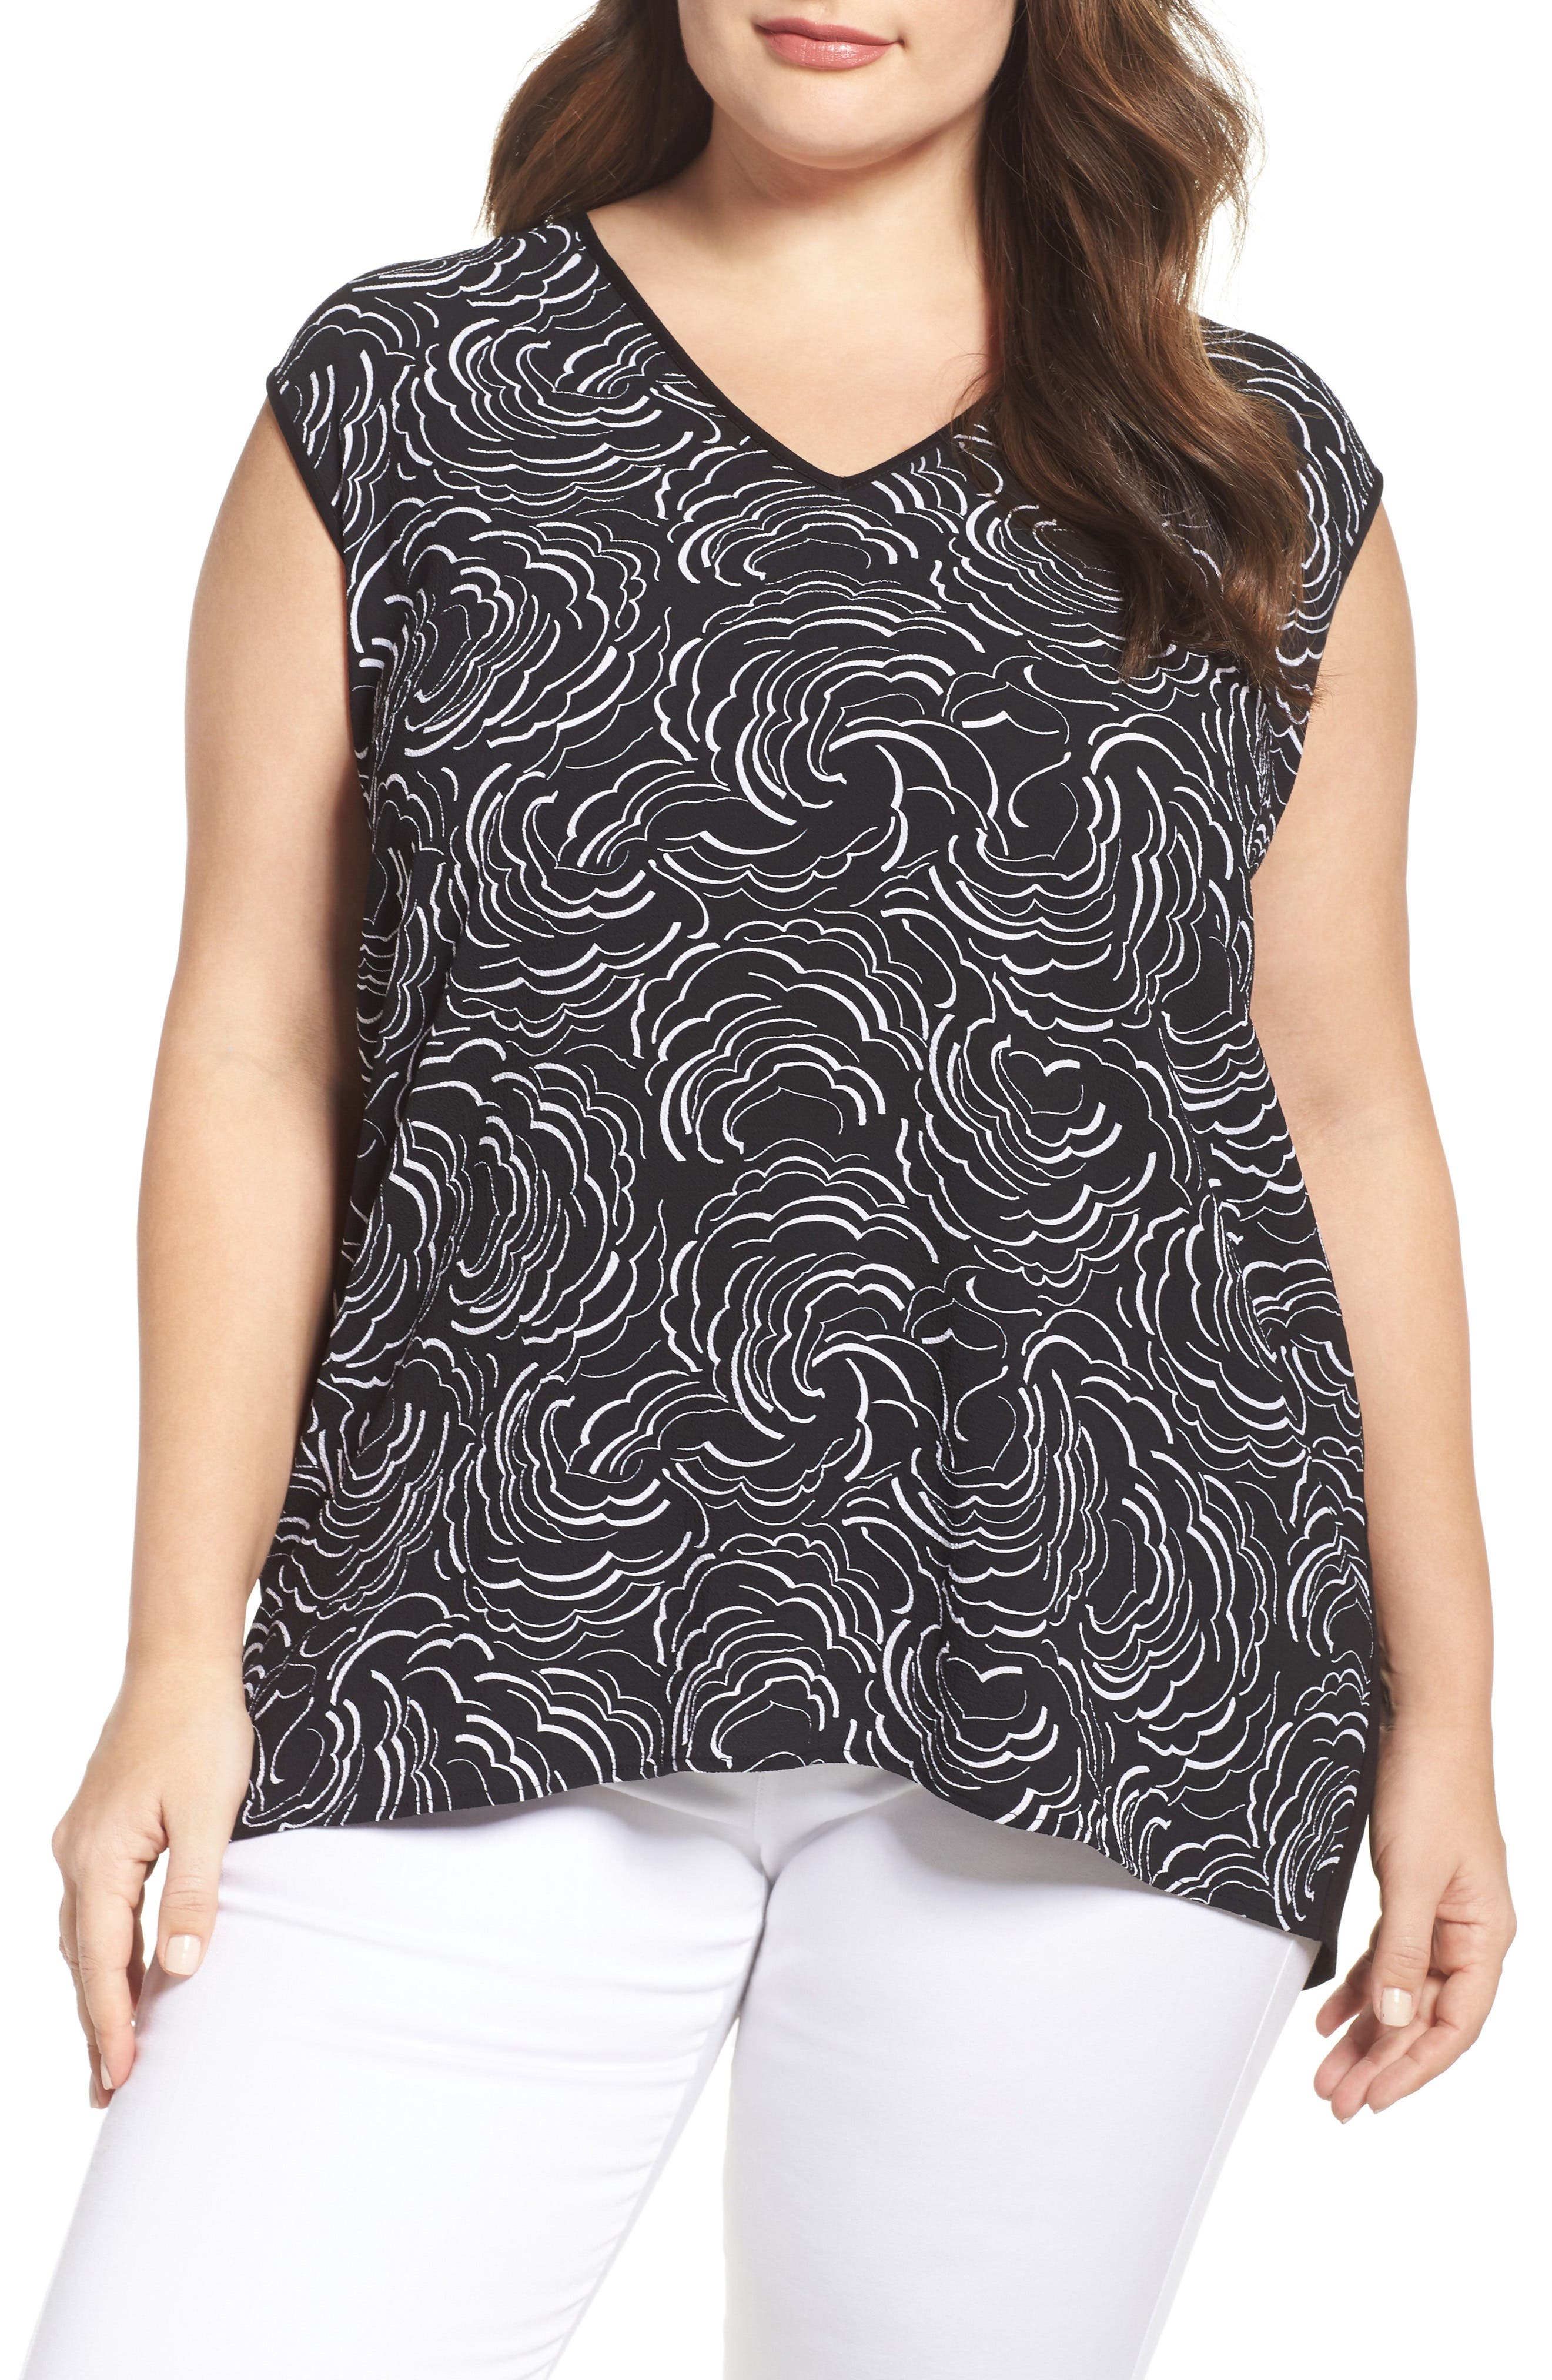 Vince Camuto Graphic Ribbons Mixed Media Top (Plus Size)